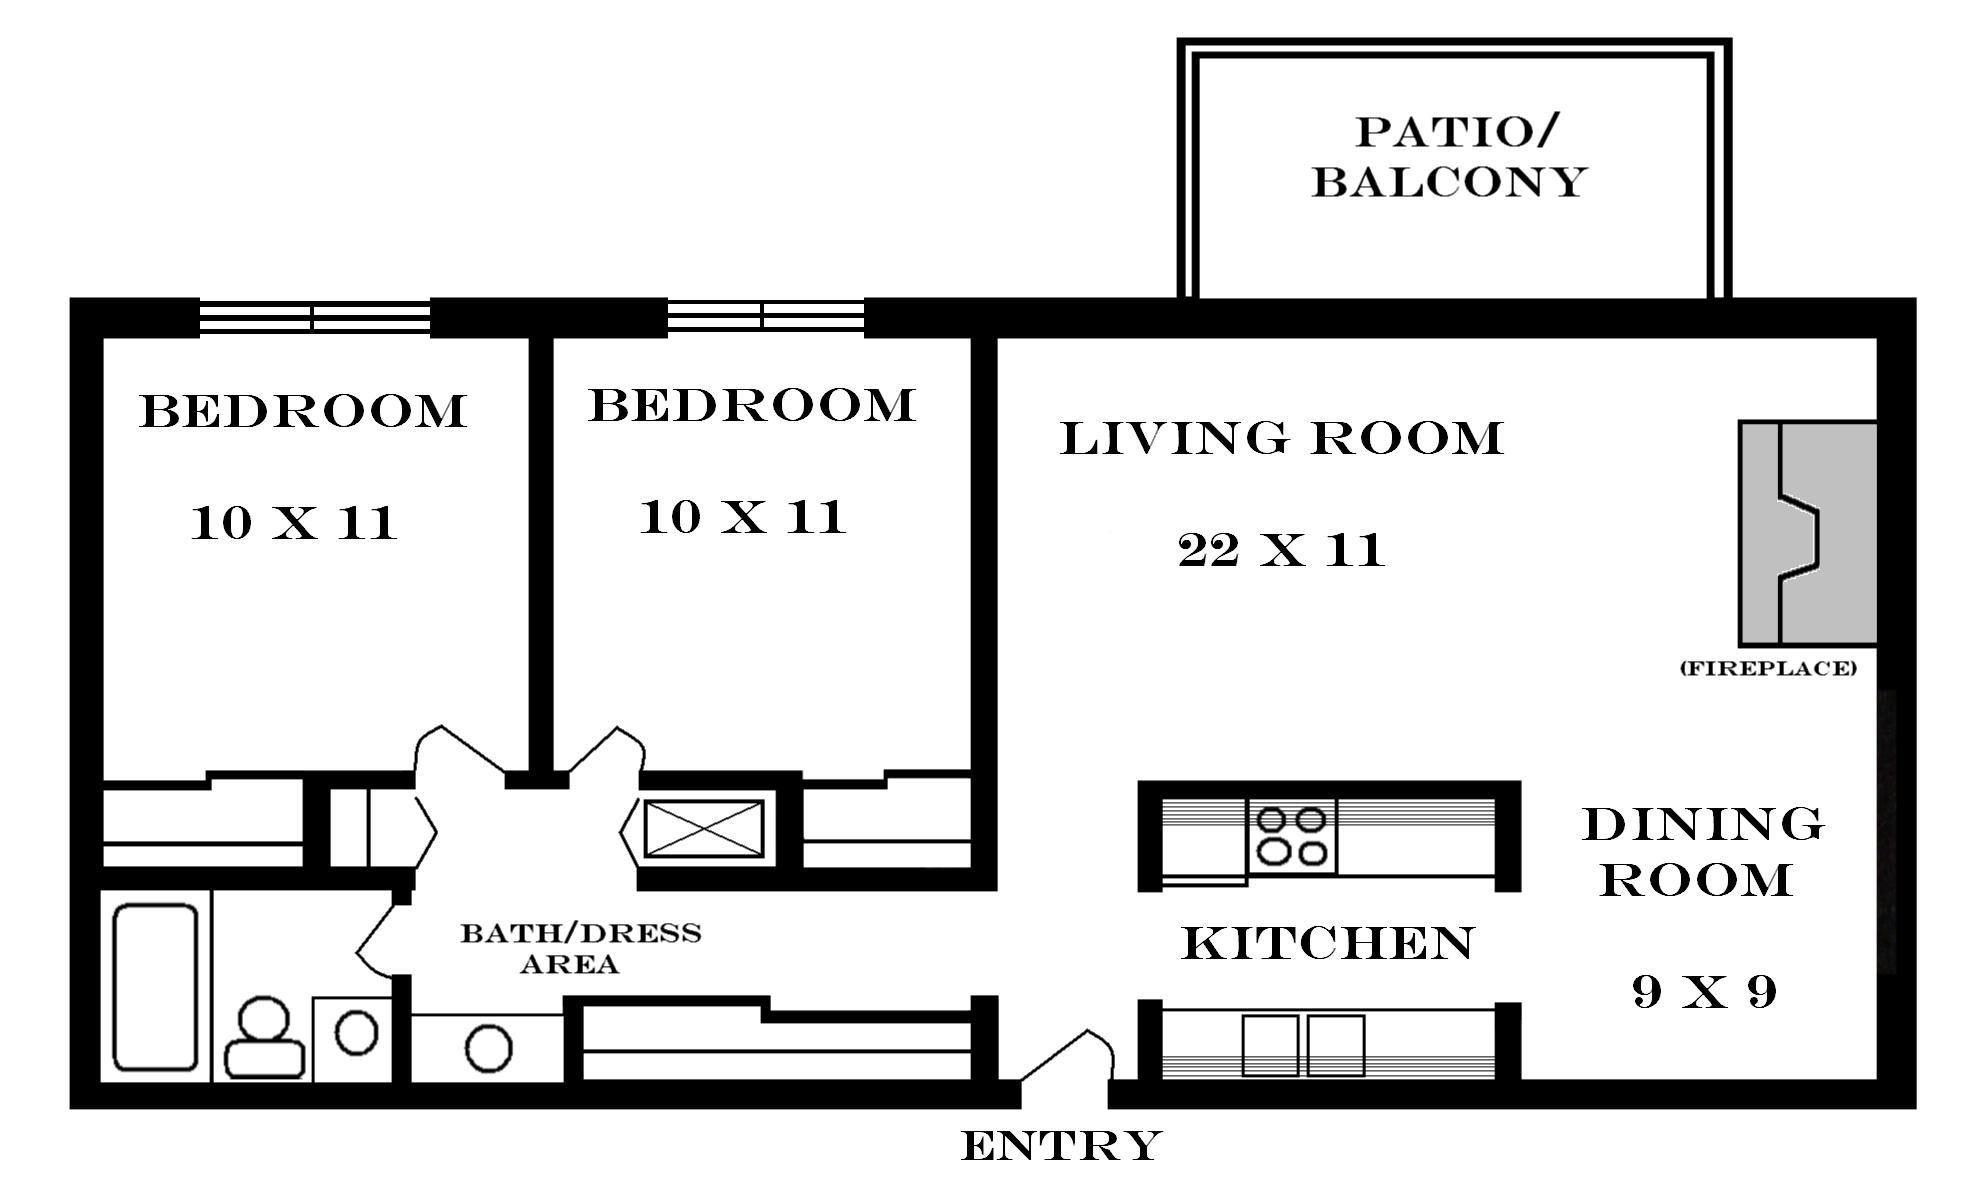 Small house floor plans 2 bedrooms 900 tiny houses for 2 bedroom houseplans